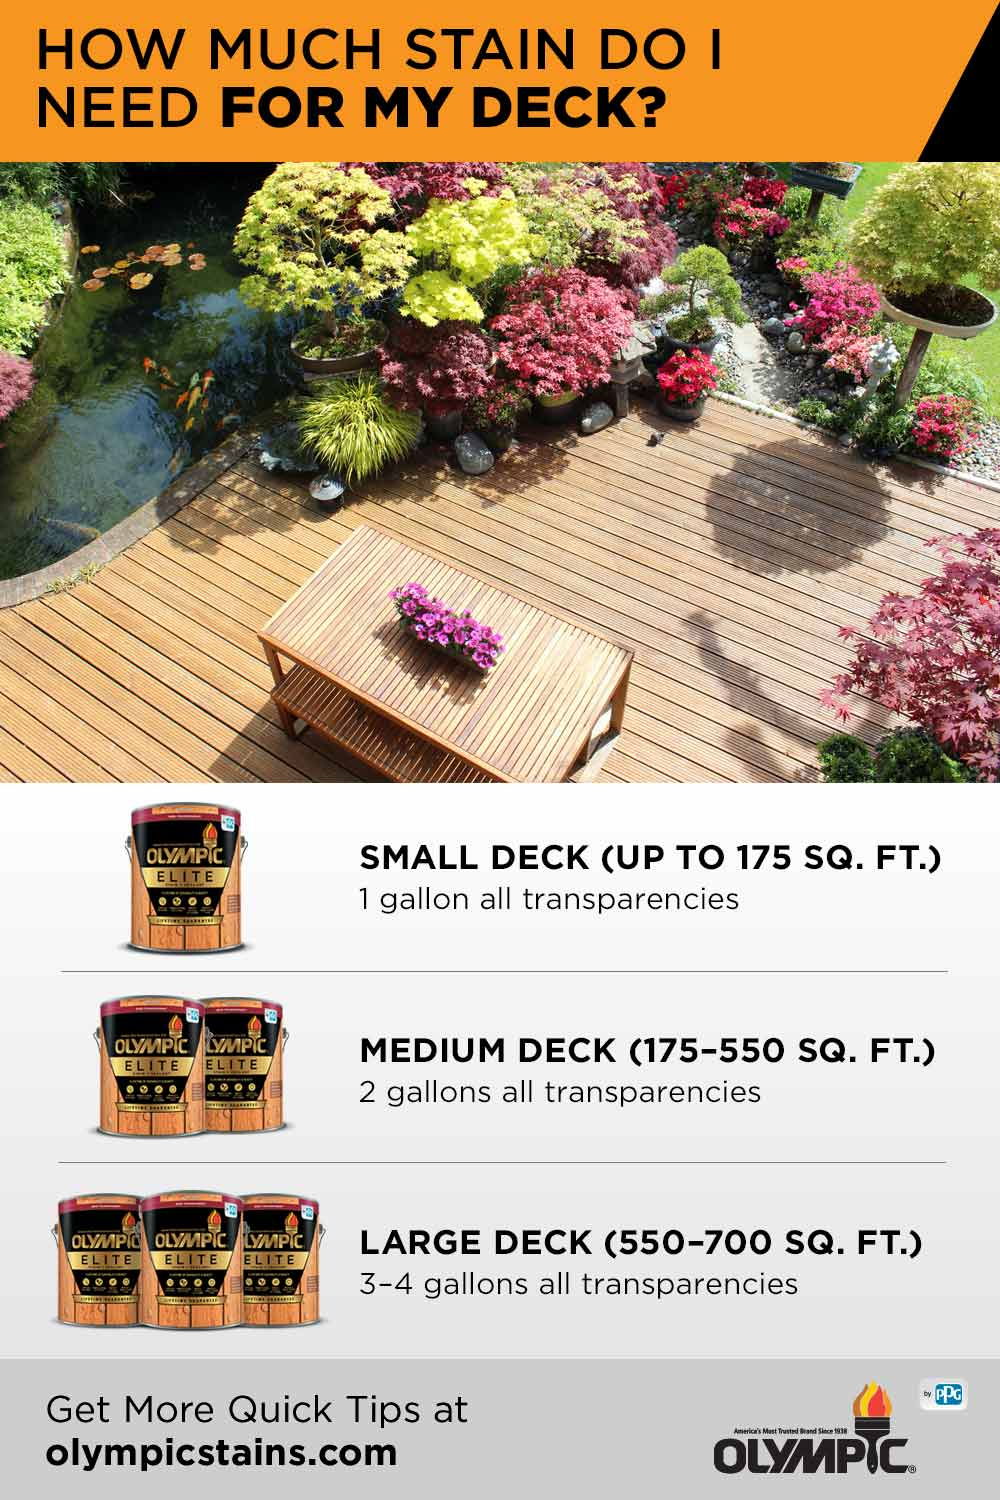 How Much Stain Do I Need For My Deck